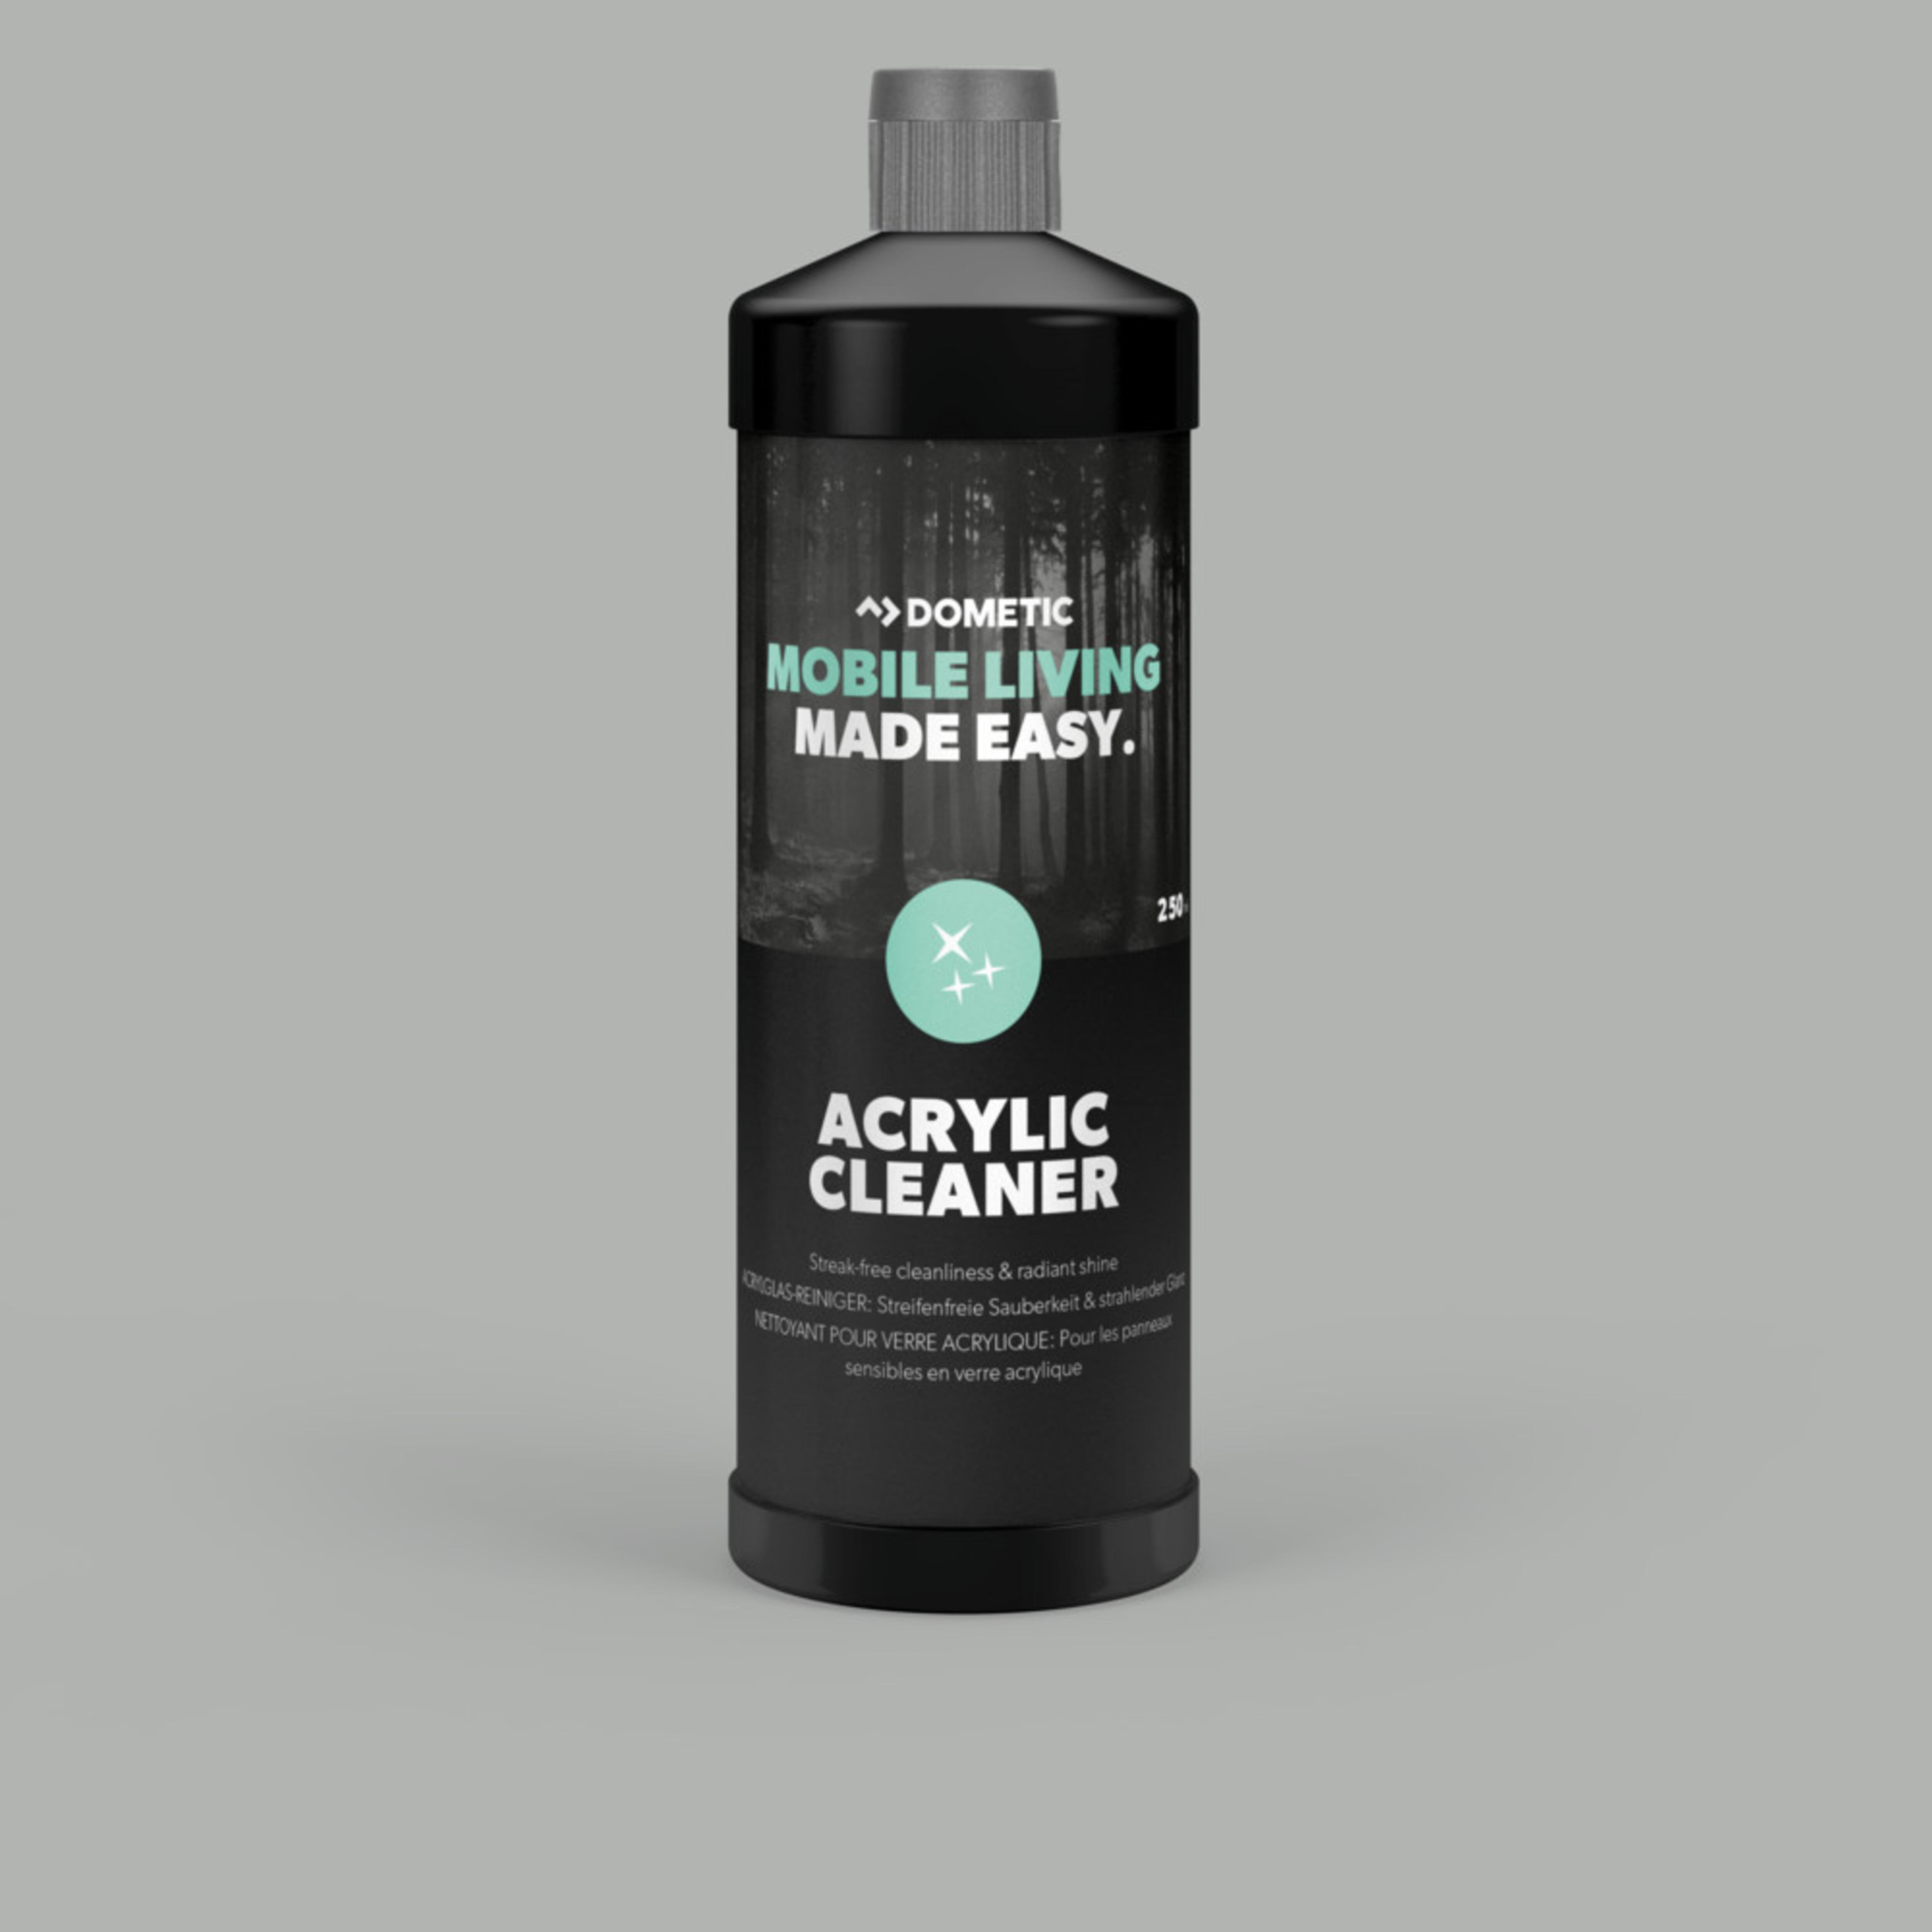 Dometic Acrylic Glass Cleaner